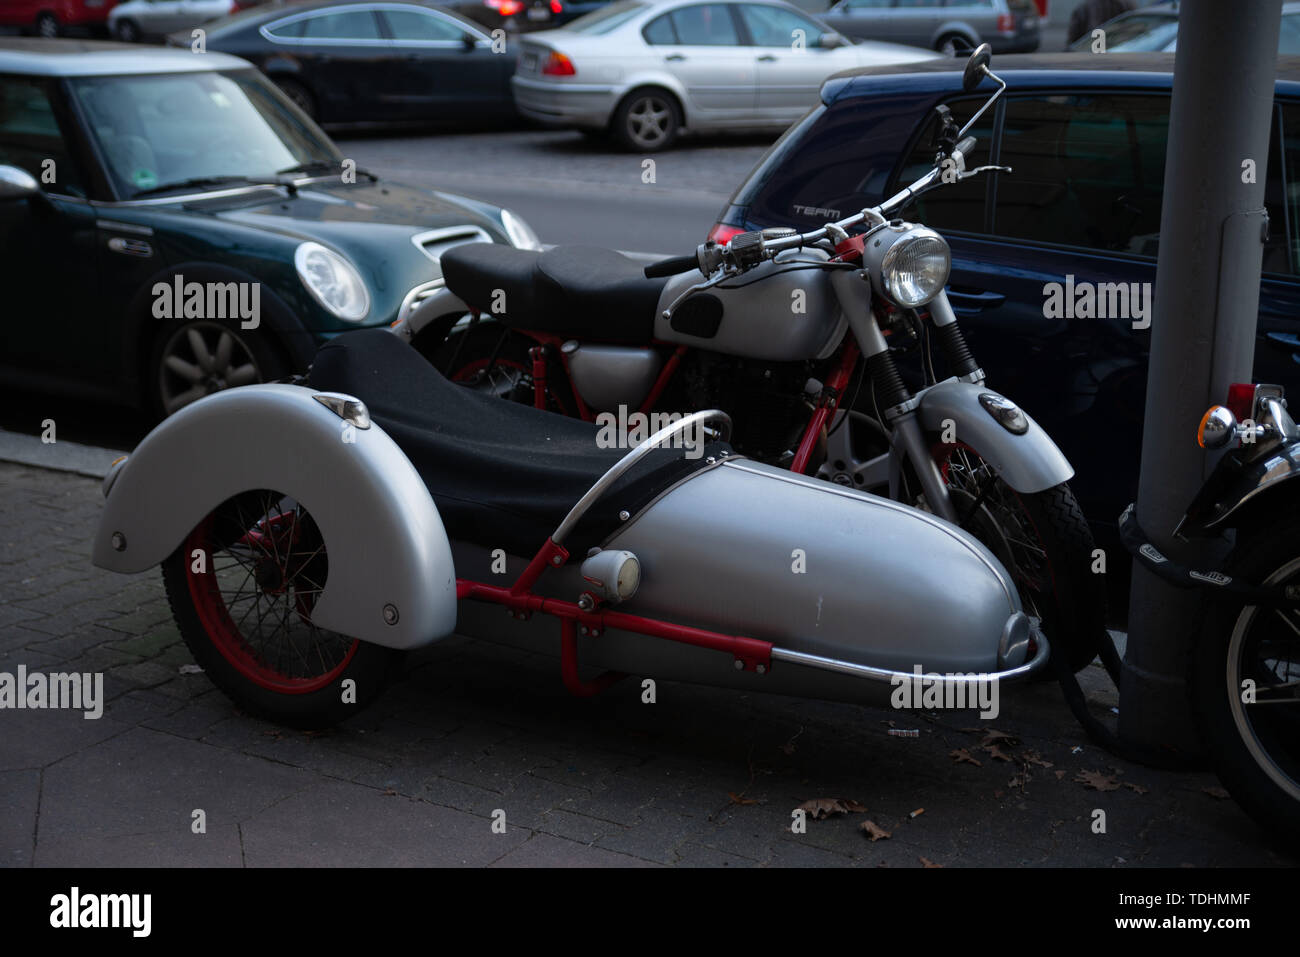 Bmw Motorcycle Sidecar Stock Photos & Bmw Motorcycle Sidecar Stock